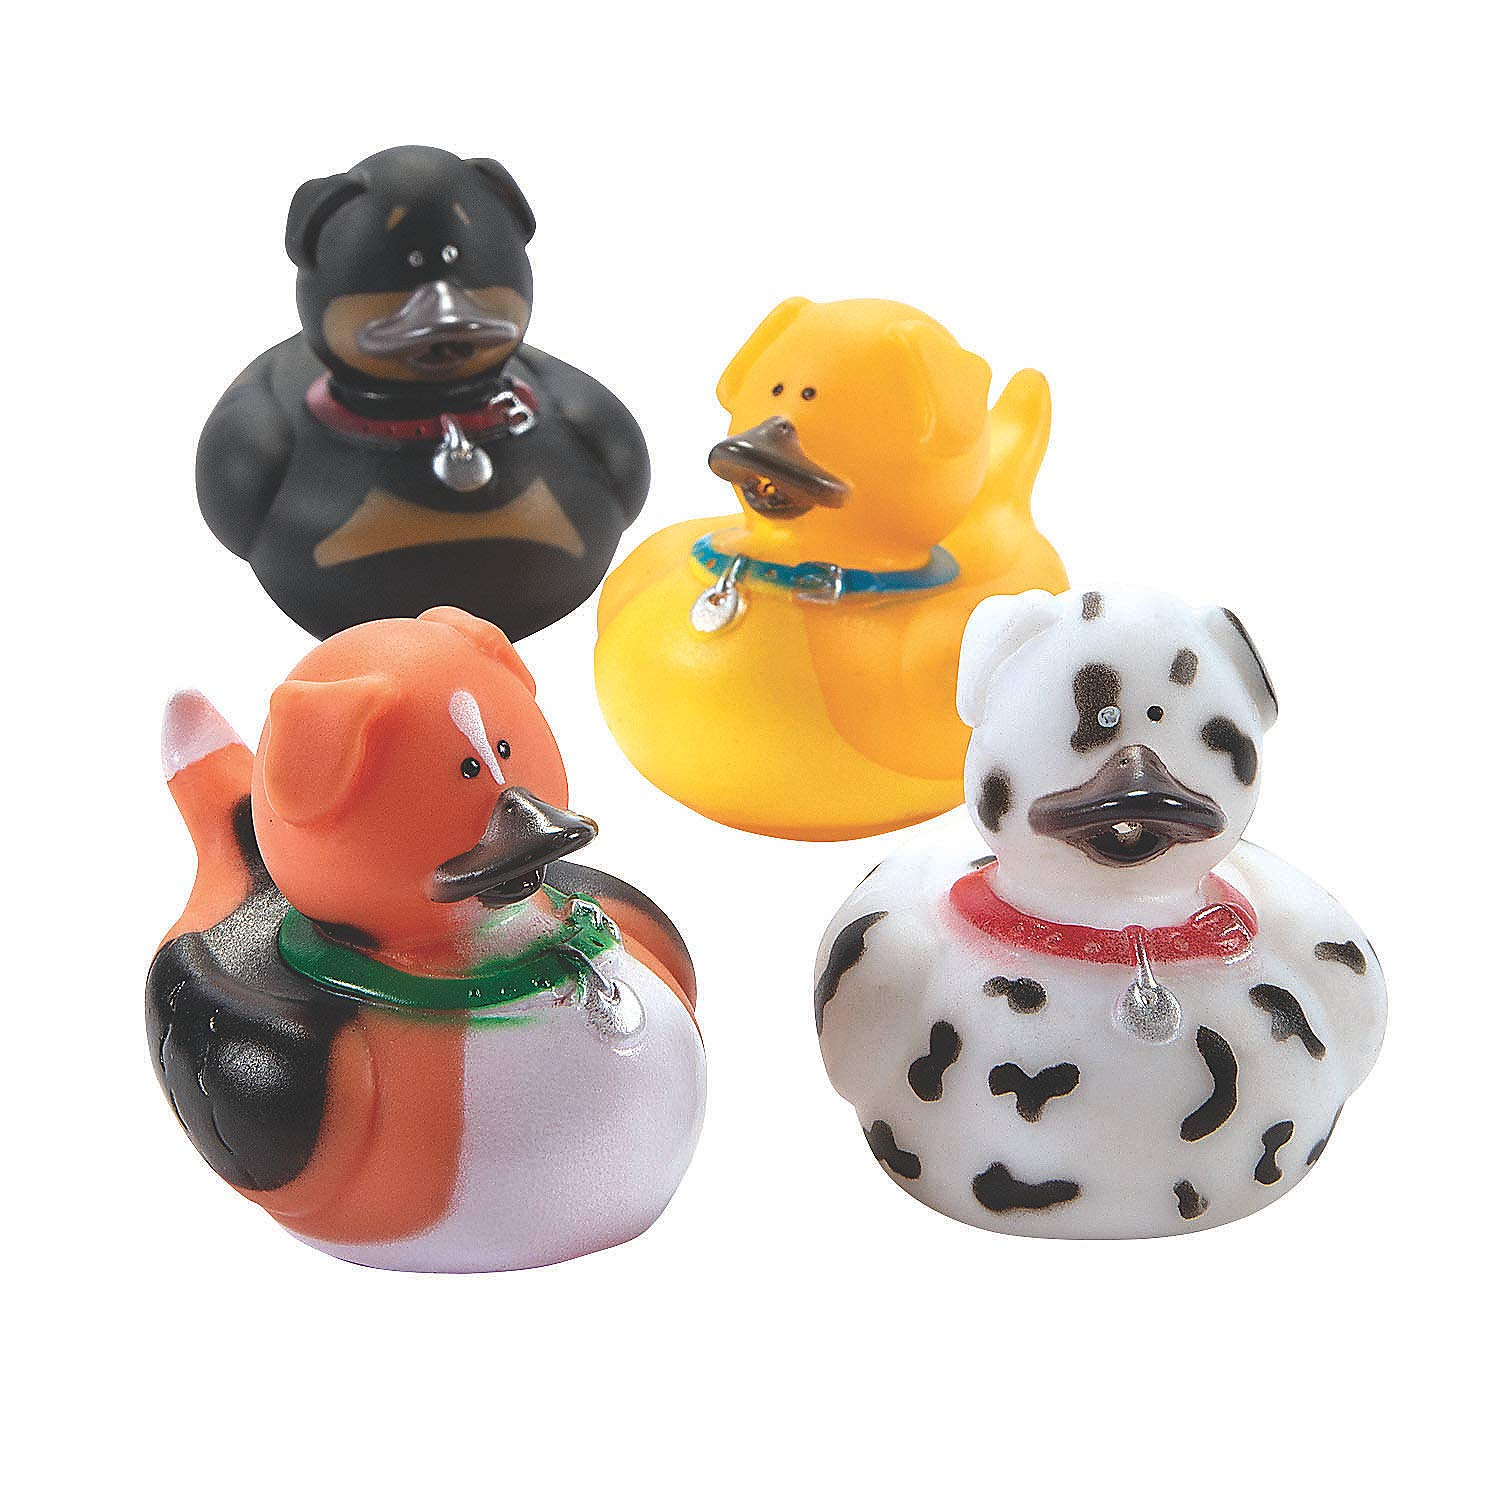 Character Toys Fun Express 12 Pieces Oriental Trading Company 3L-16-882 Dog Rubber Duckies Toys Rubber Duckies